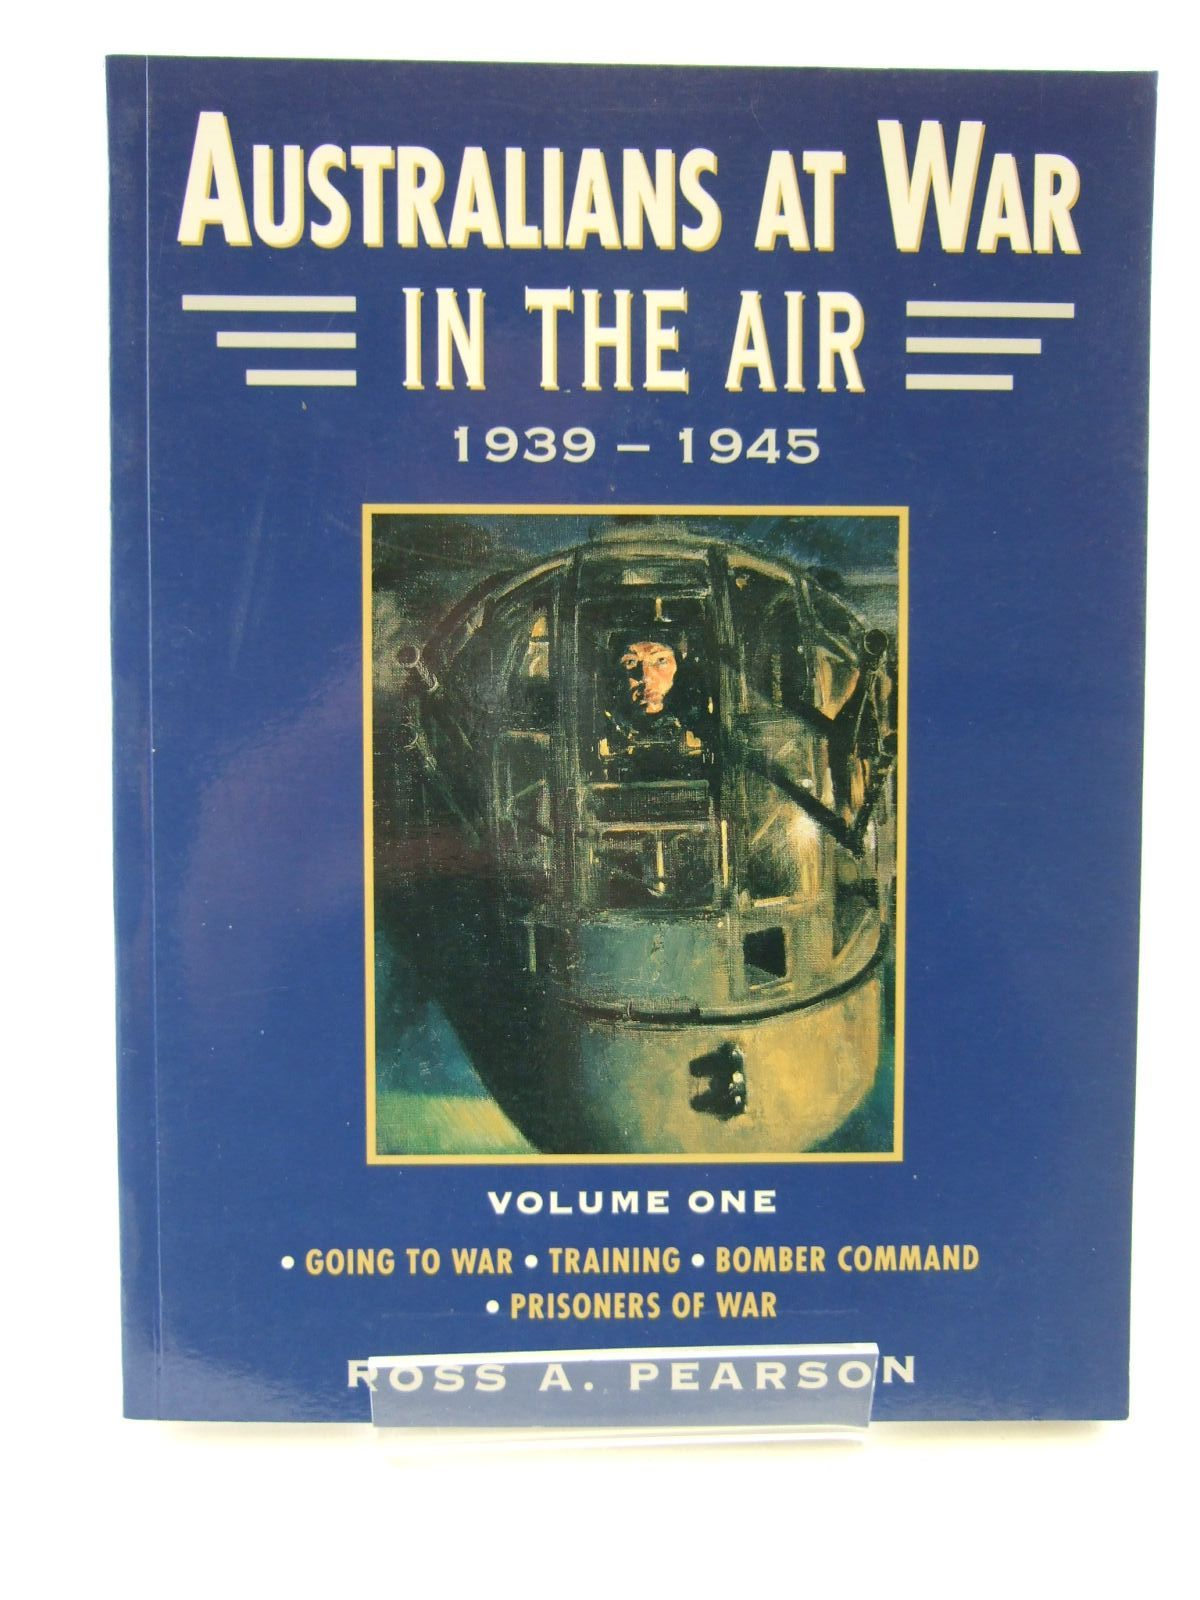 Photo of AUSTRALIANS AT WAR IN THE AIR 1939-1945 VOLUME ONE written by Pearson, Ross A. published by Kangaroo Press (STOCK CODE: 1707110)  for sale by Stella & Rose's Books